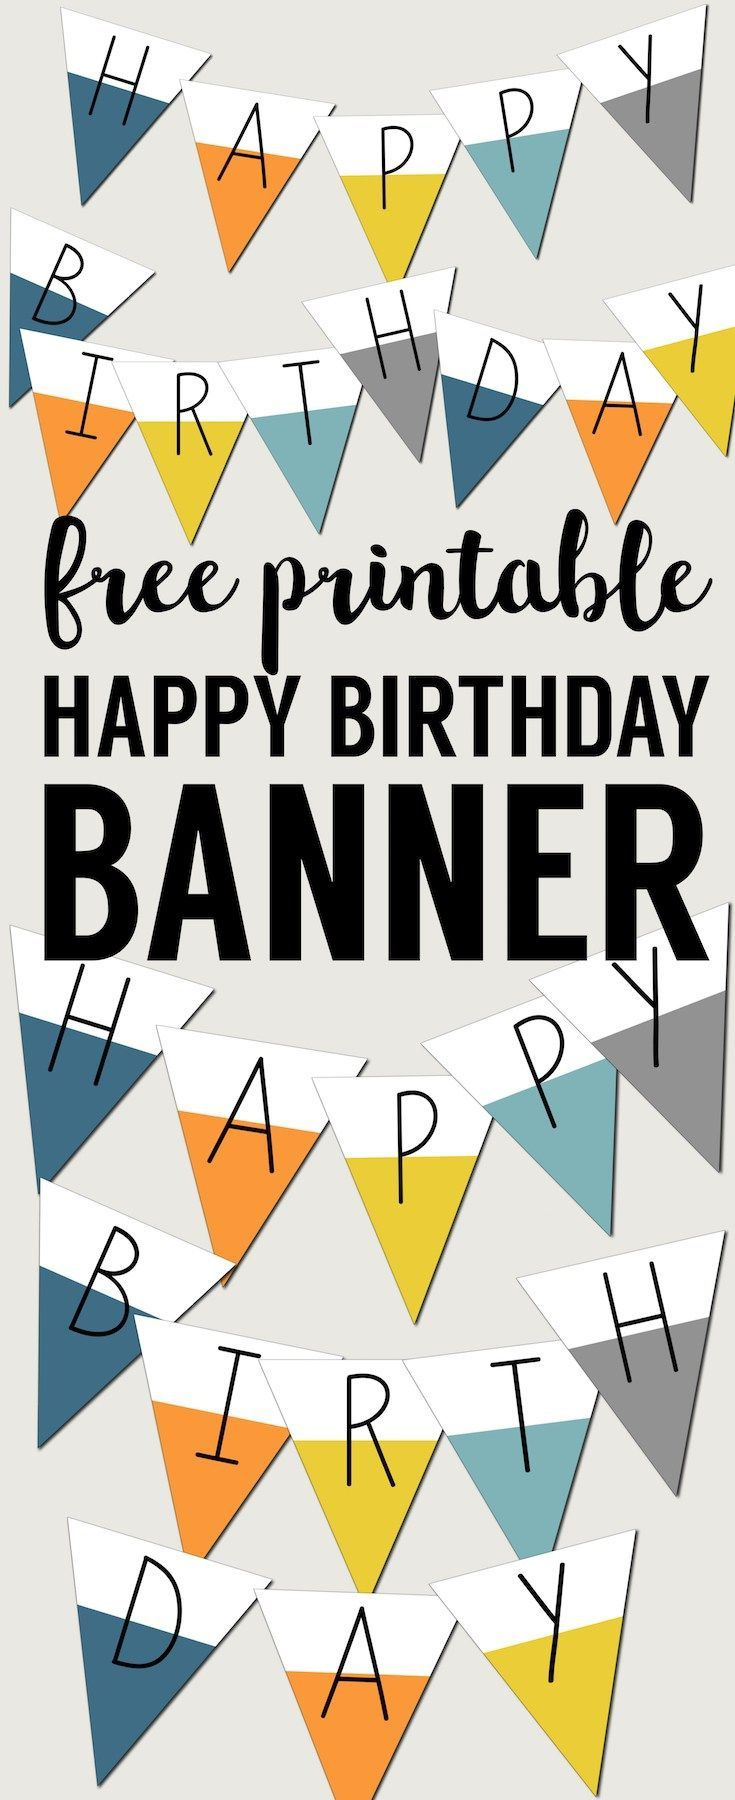 004 Rare Happy Birthday Sign Template Idea  Banner Printable Pdf Free WordFull